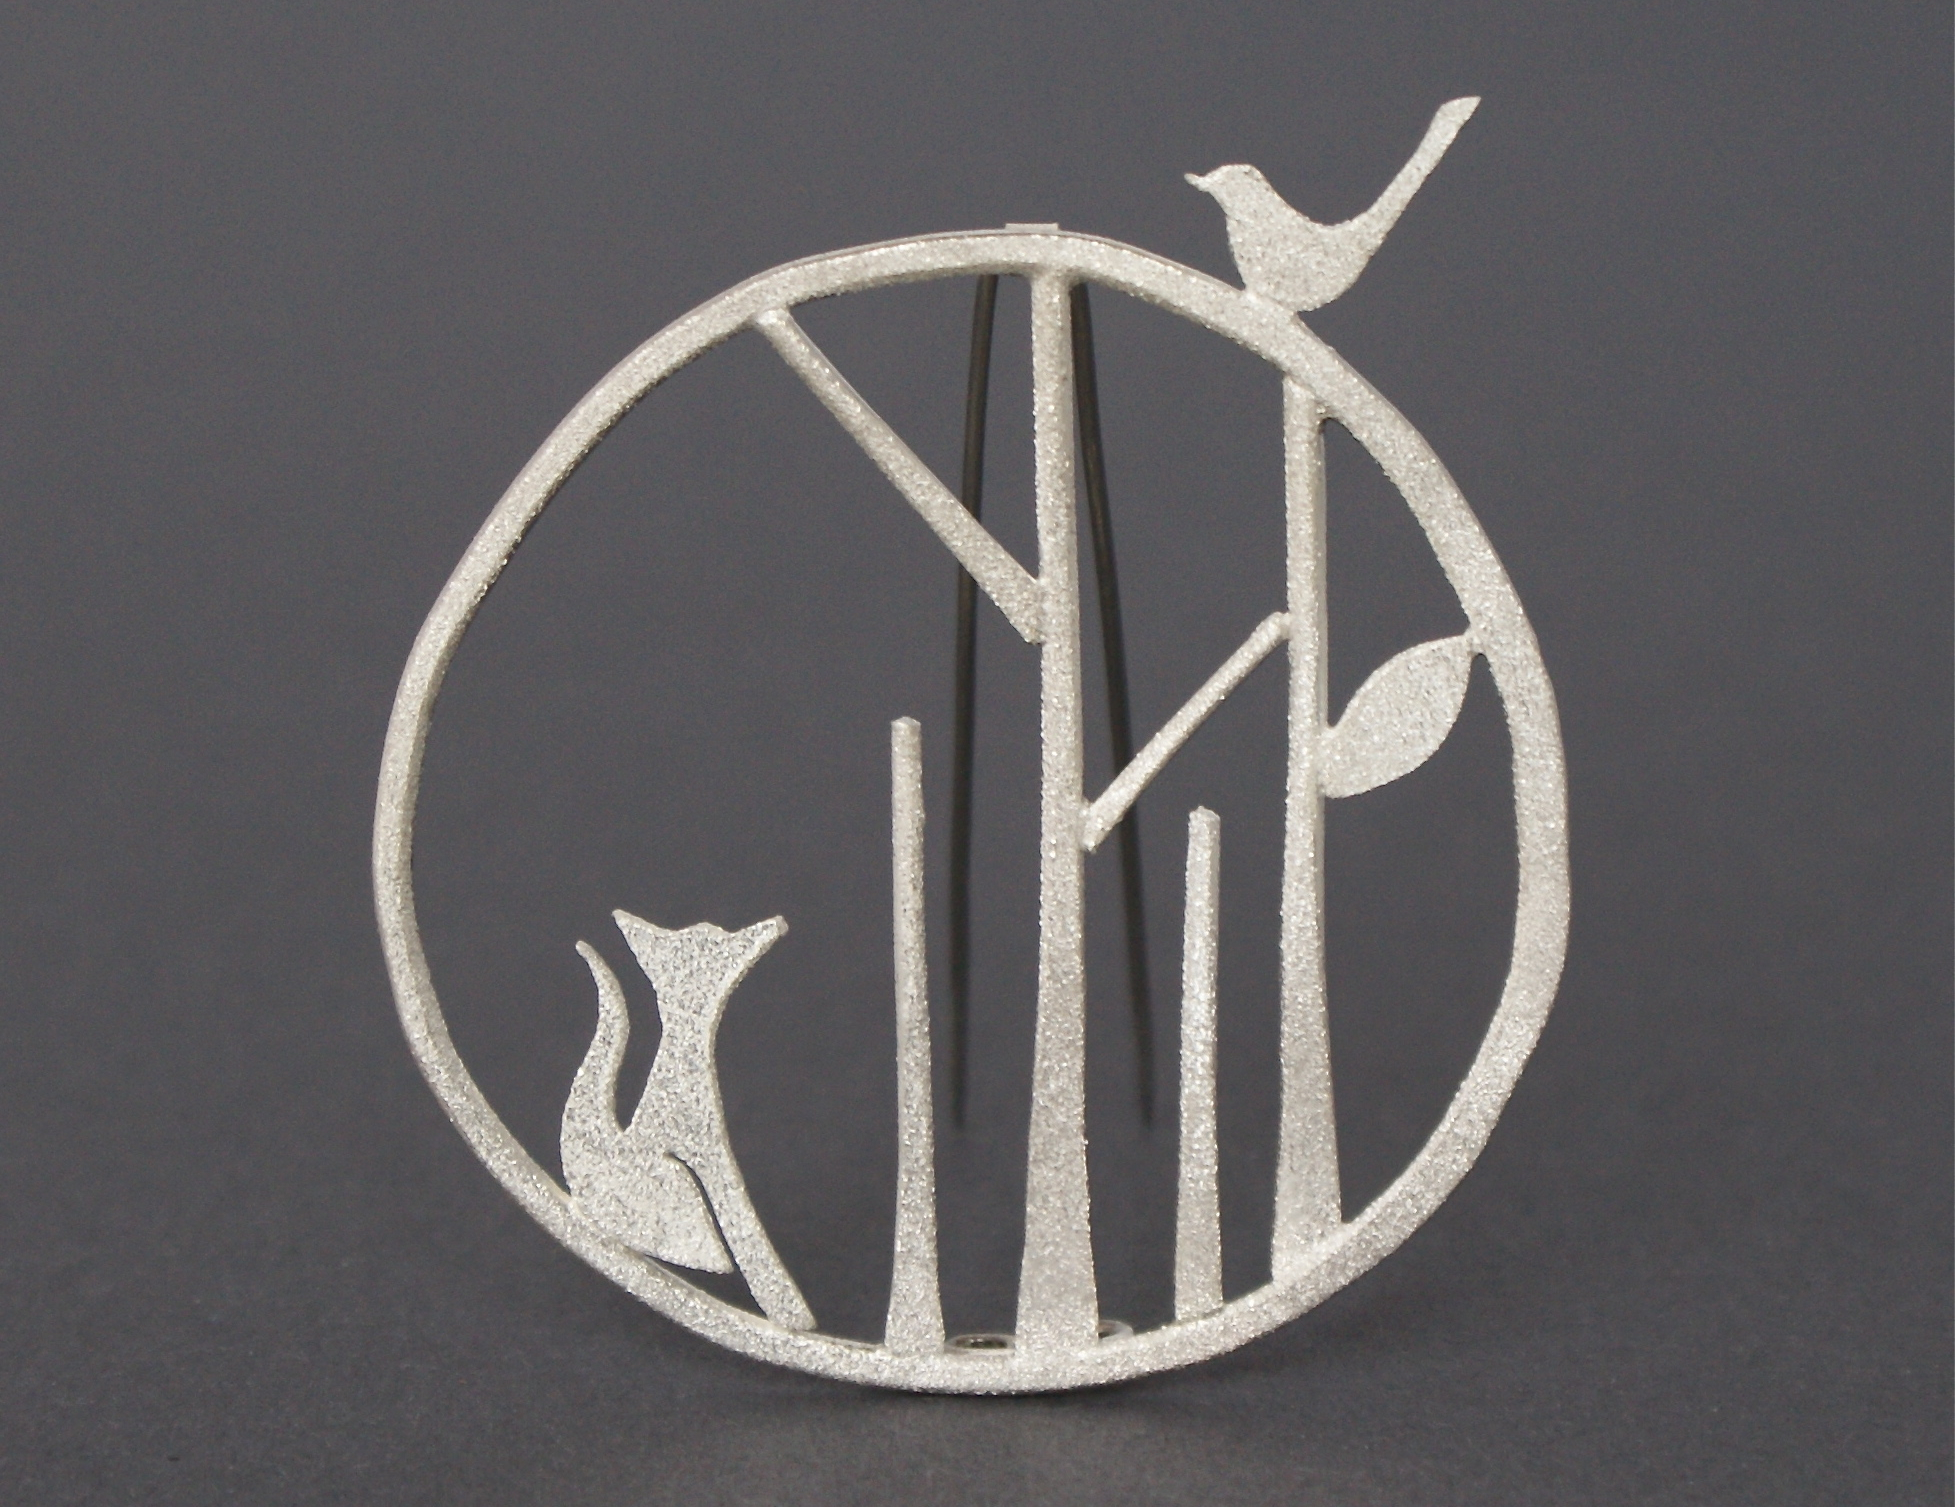 Claire gent, edge of the woods, statement jewellery, fox brooch, silver jewellery UK, handmade jewellery, selling tips, building a brand, tips for designers,